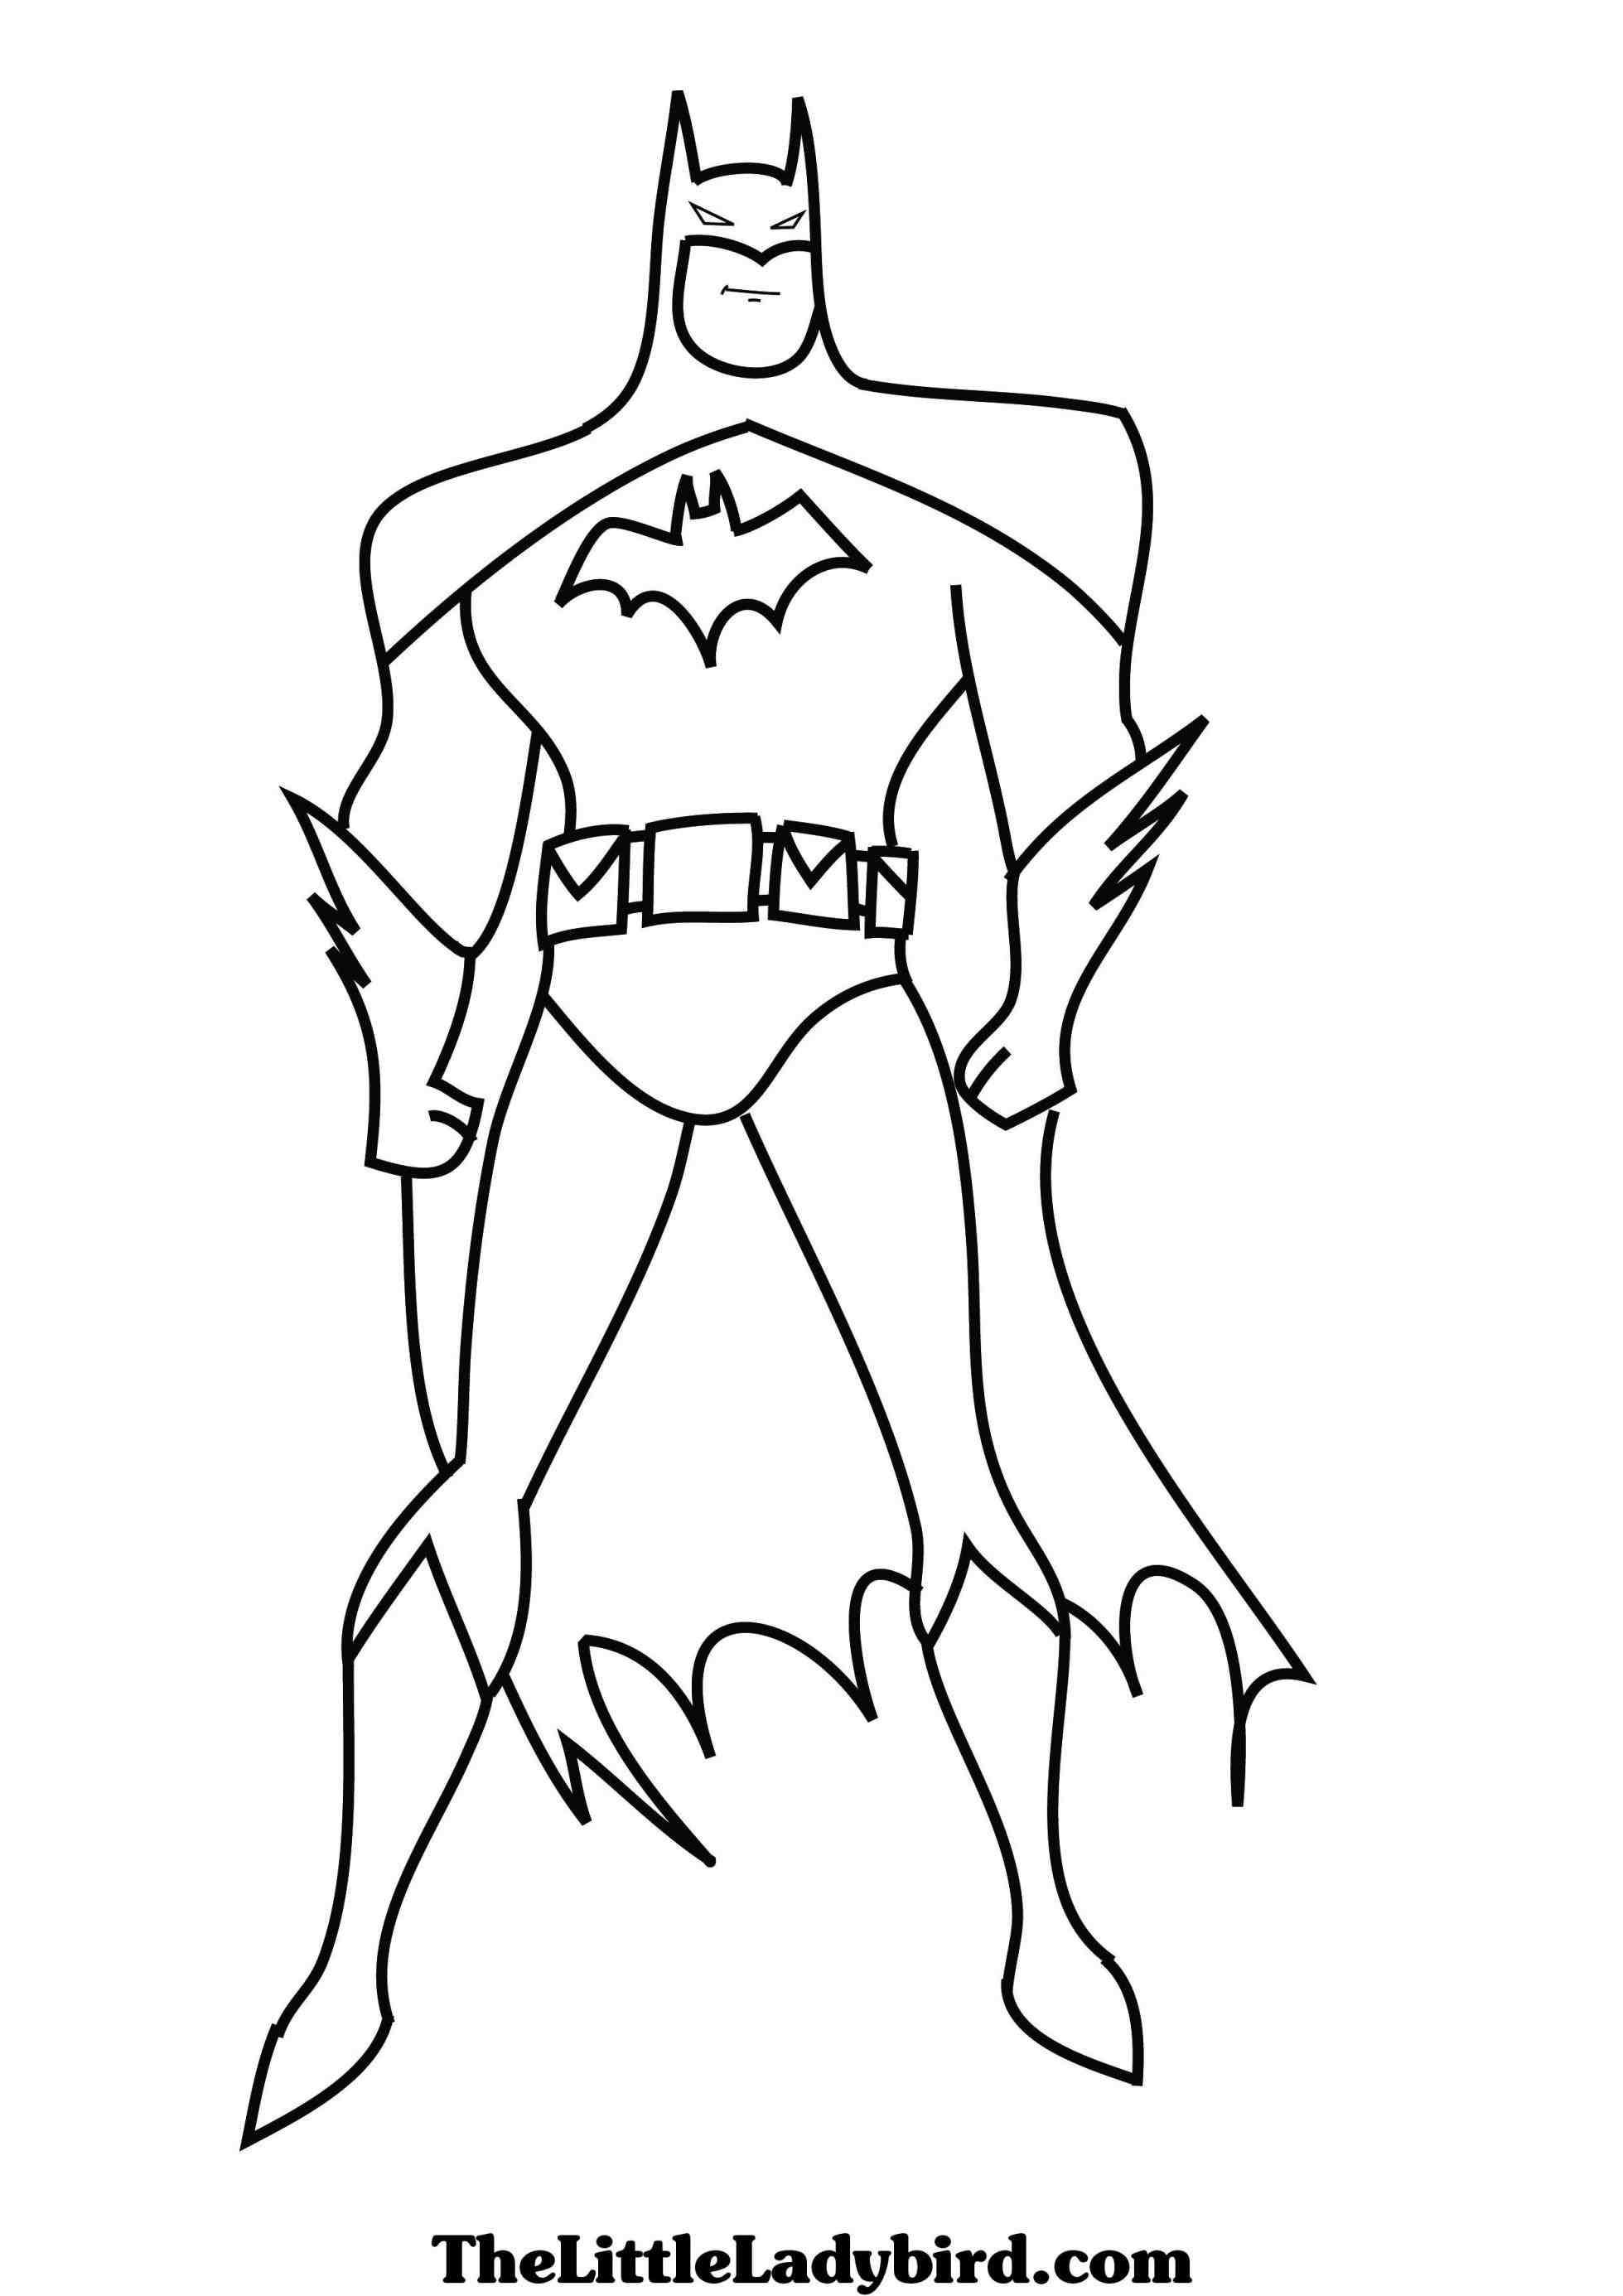 Batman Animated Series Coloring Pages Superhero Coloring Superhero Coloring Pages Superman Coloring Pages